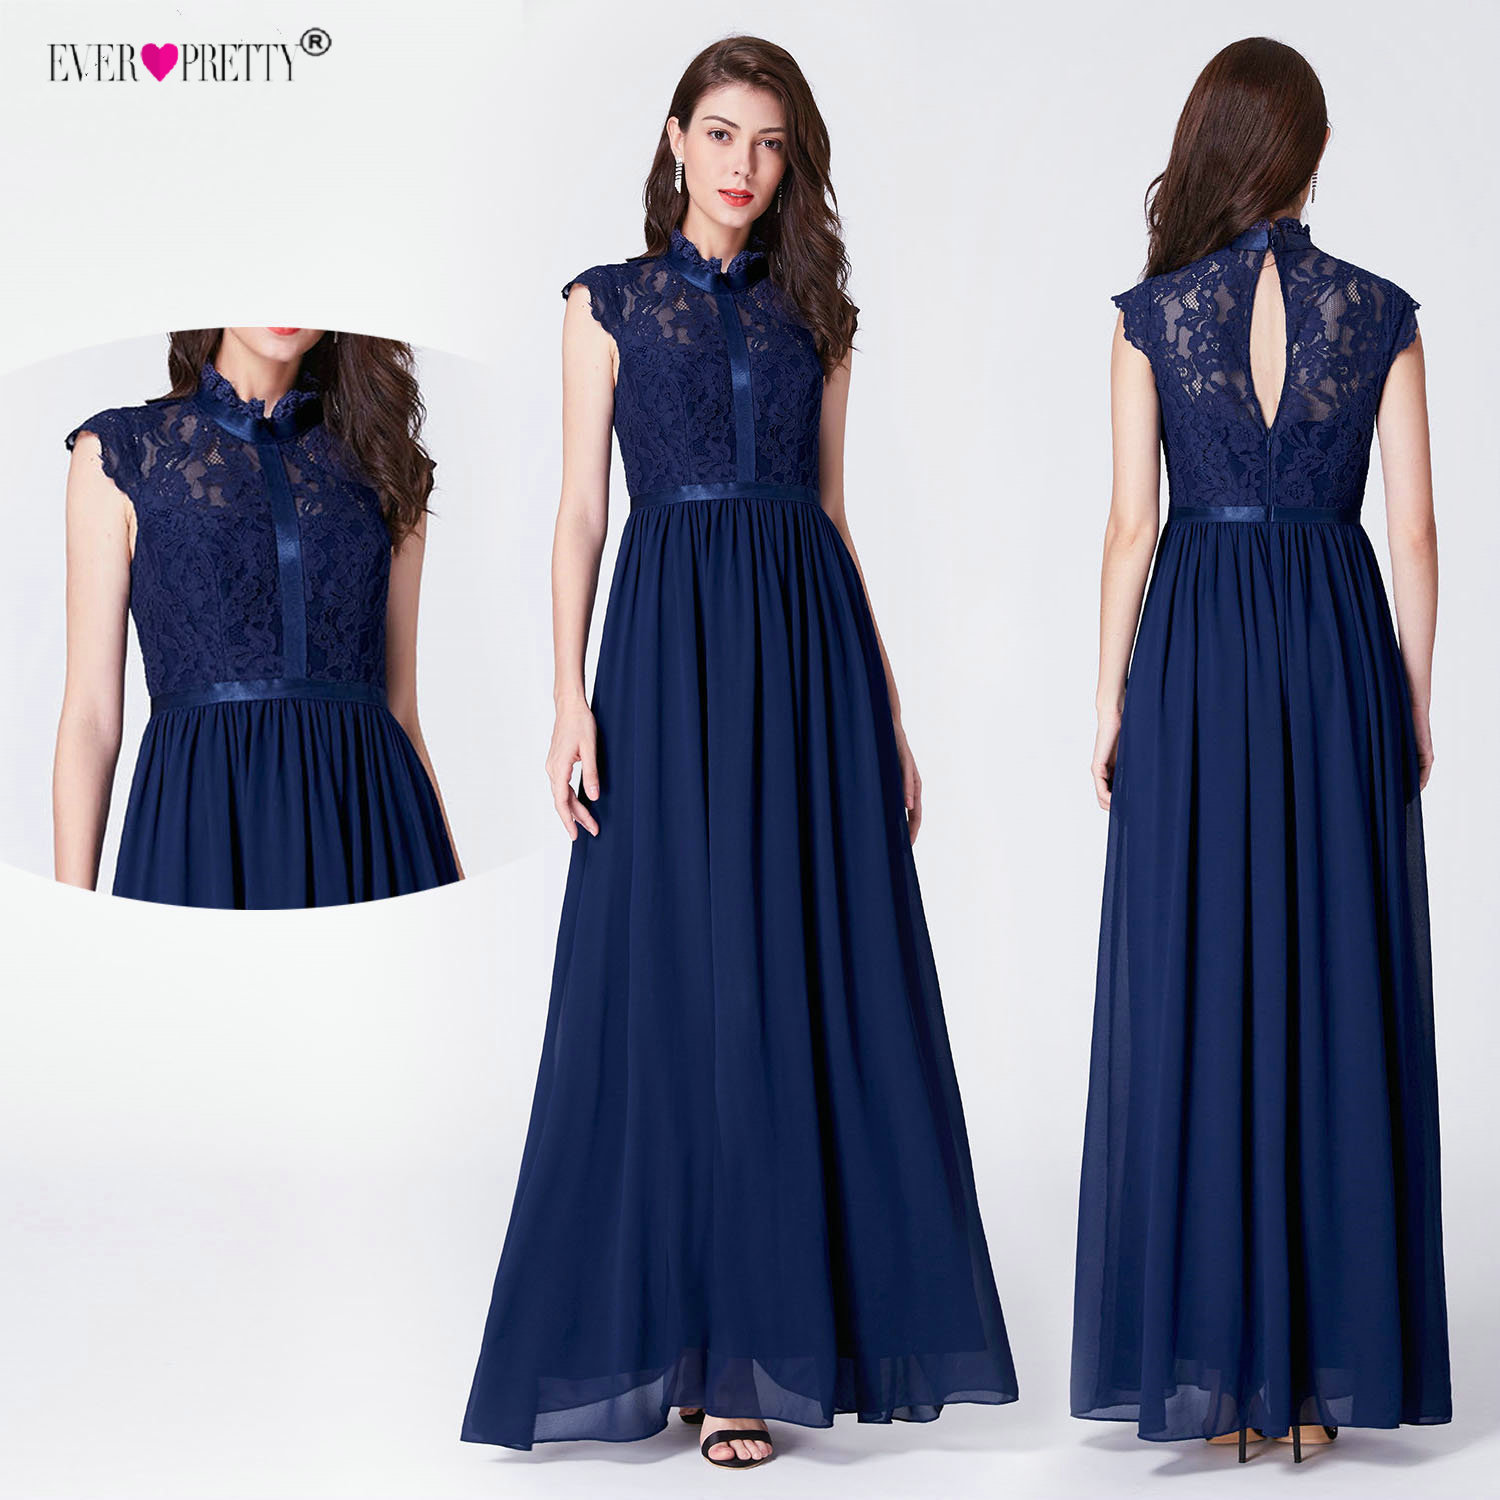 Navy Blue Lace Plus Size   Prom     Dresses   2019 Ever Pretty EZ07696 Elegant Sleeveless Ruffles A-line High Neck Wedding Guest Gowns